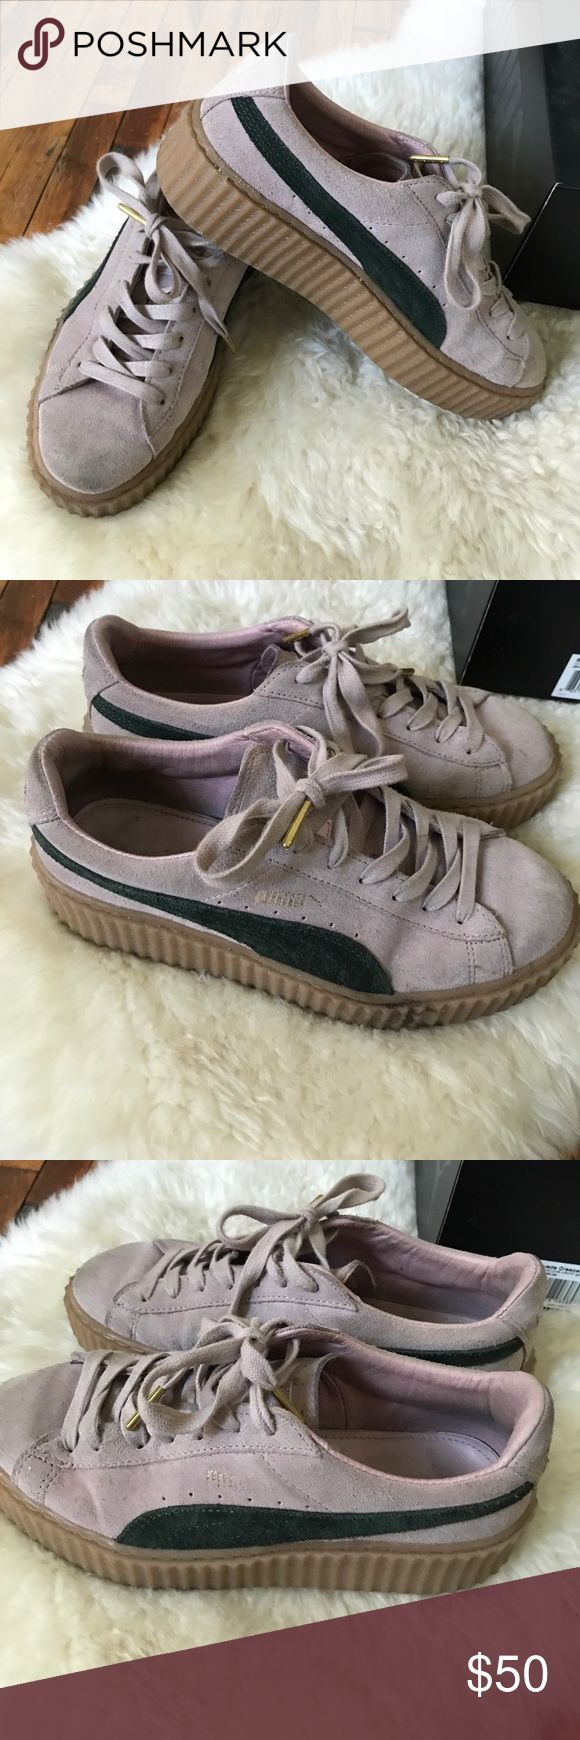 RIHANNA FENTY PUMA CREEPERS Worn. Size 7.5. Open to offers 💕 Rihanna Shoes Sneakers